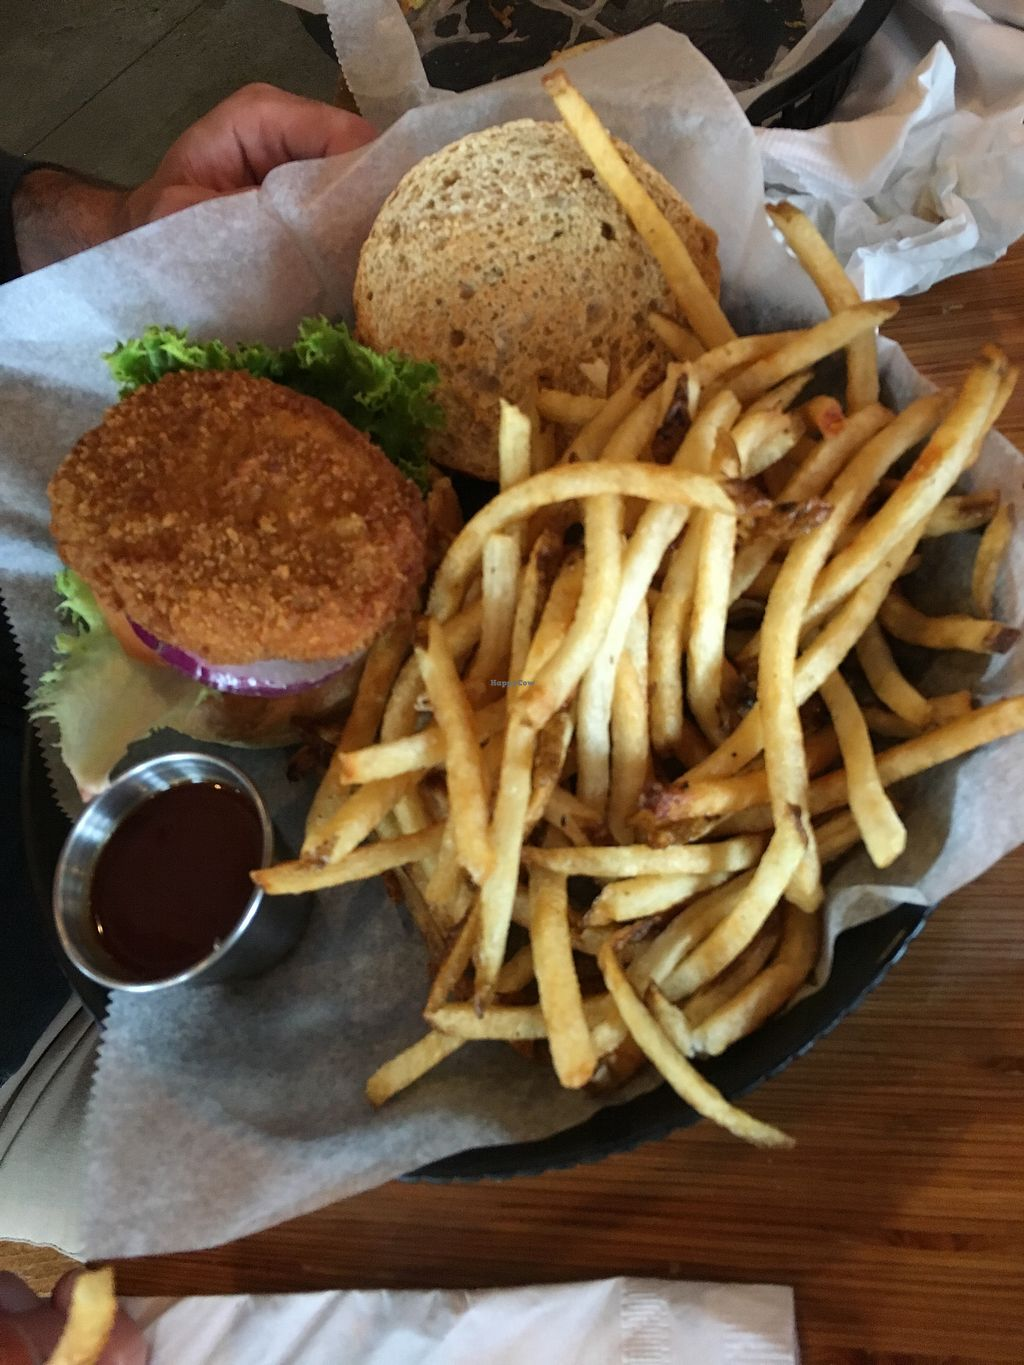 """Photo of Pig Minds Brewing  by <a href=""""/members/profile/olgueis"""">olgueis</a> <br/>Chickin' sandwich   <br/> August 5, 2017  - <a href='/contact/abuse/image/32686/289430'>Report</a>"""